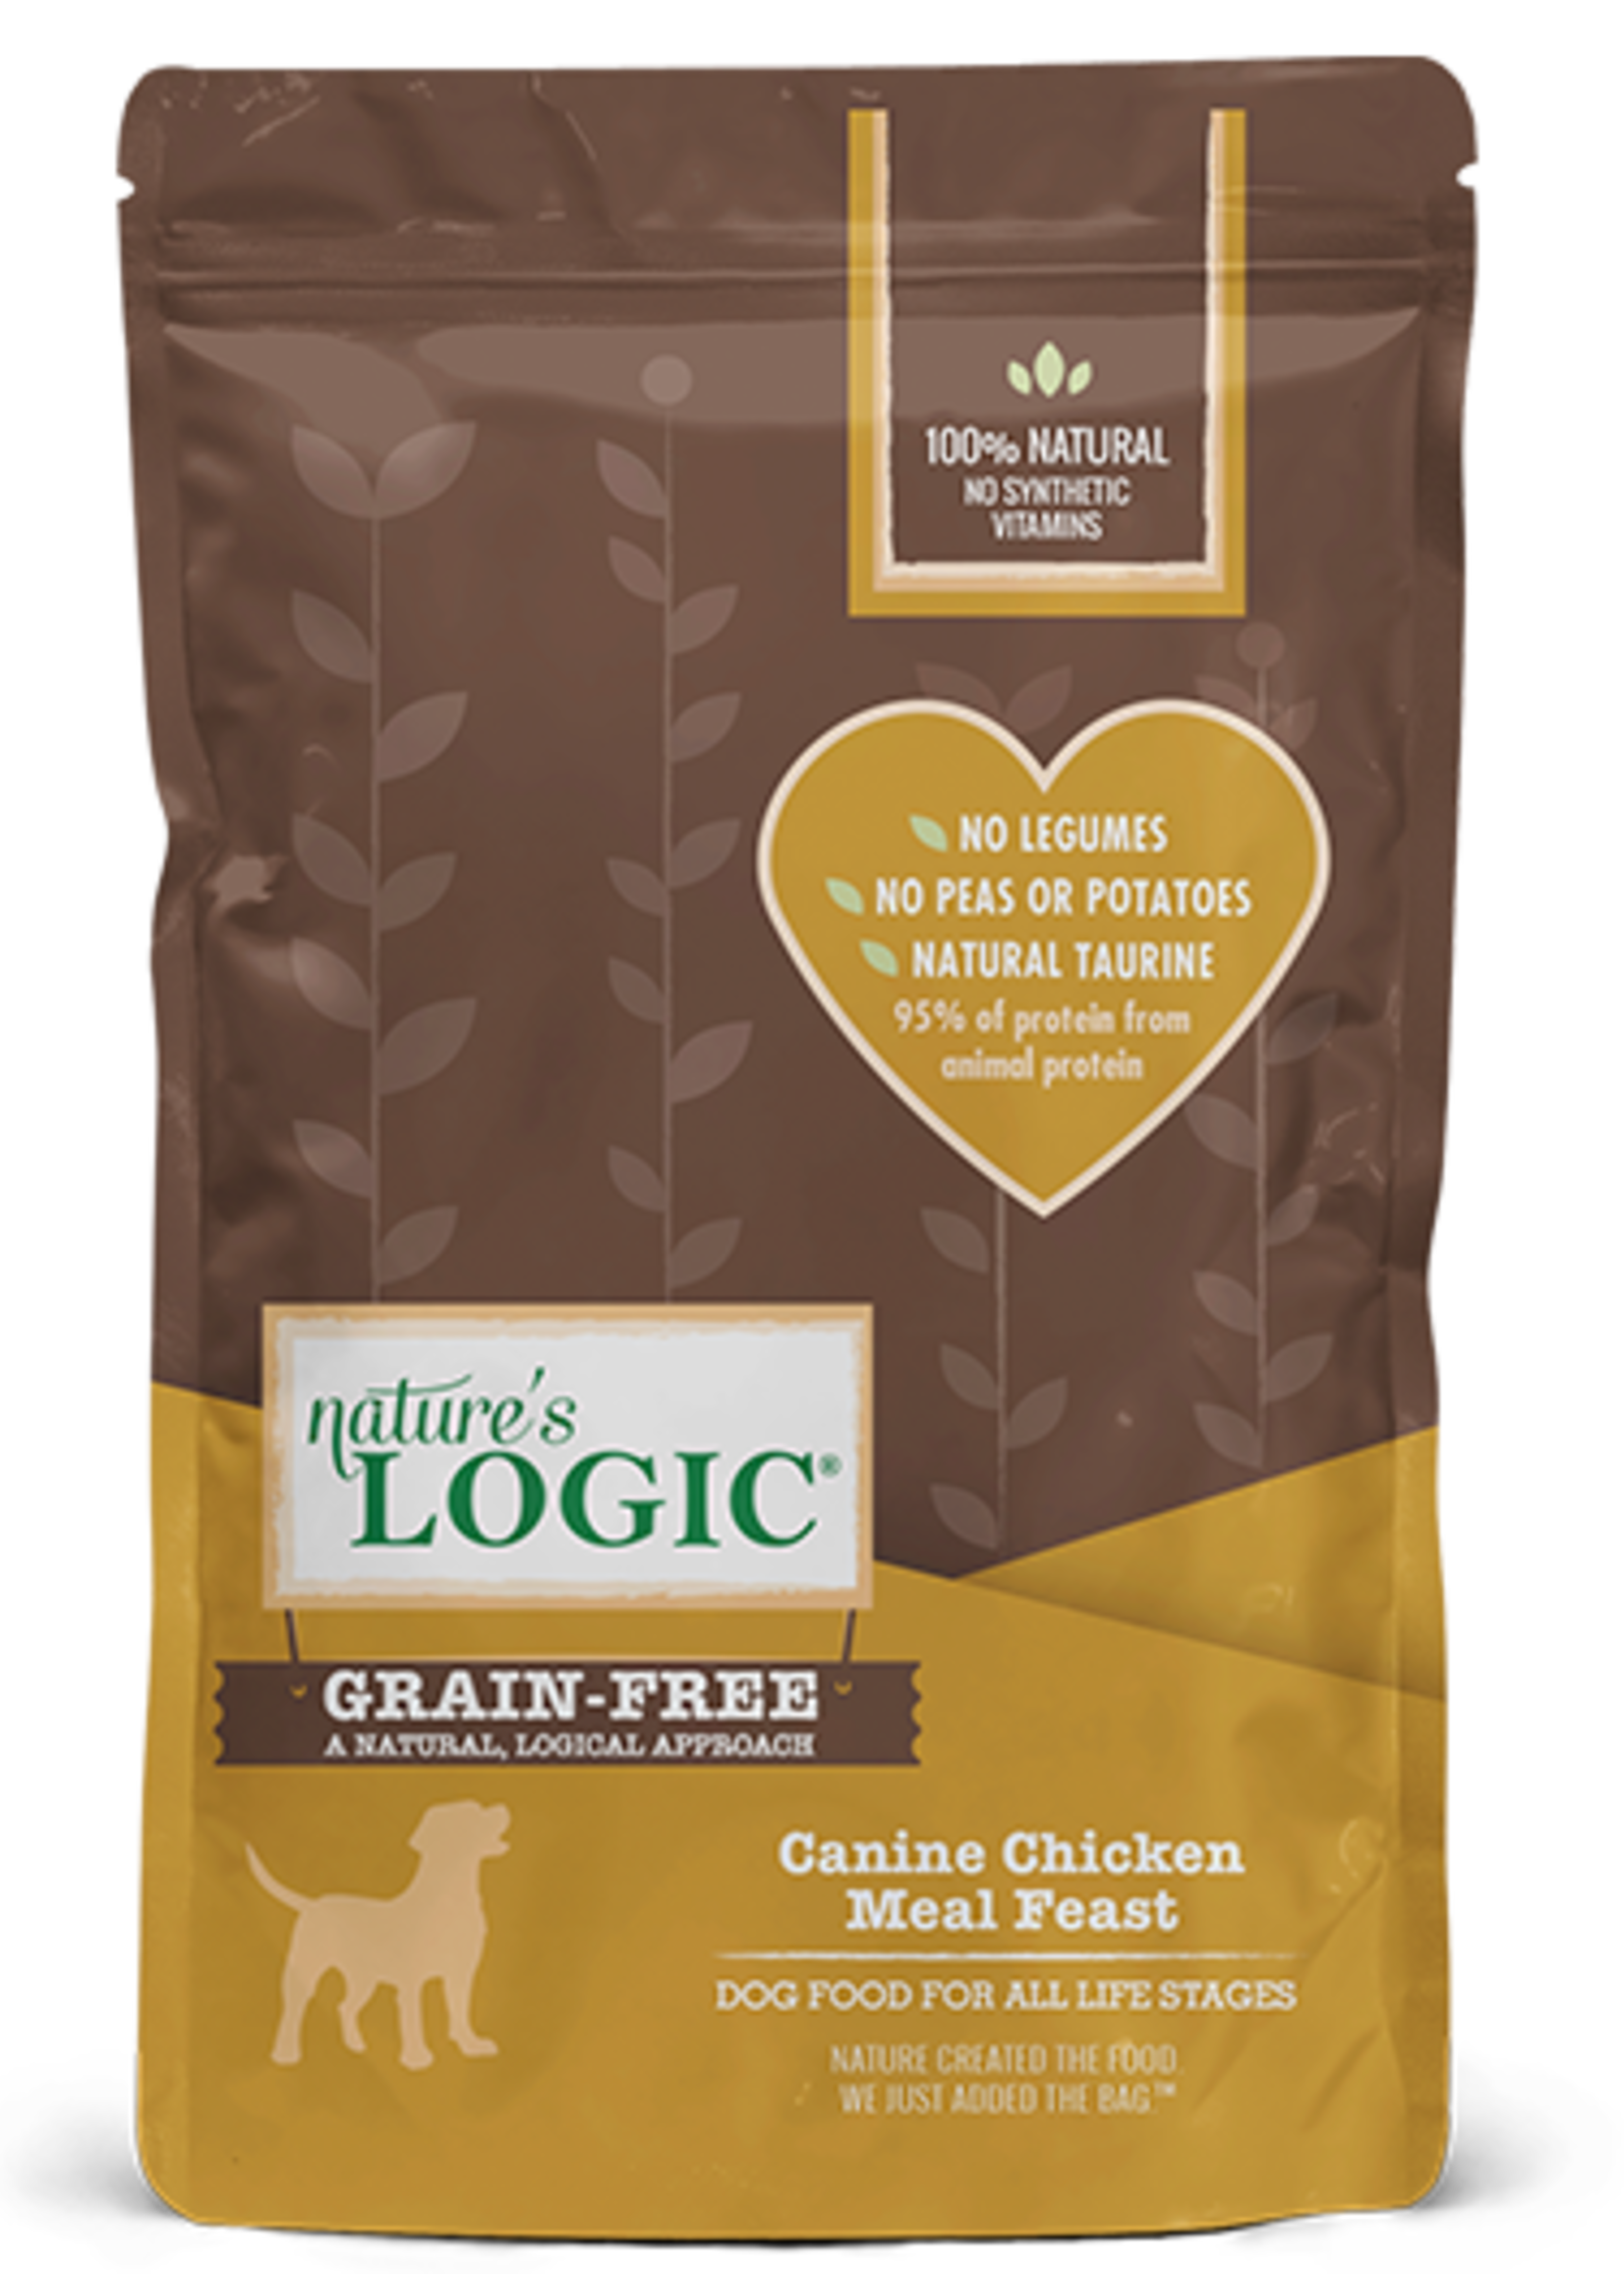 Nature's Logic Nature's Logic Canine Chicken Meal Feast Grain-Free Dry Dog Food 25lbs